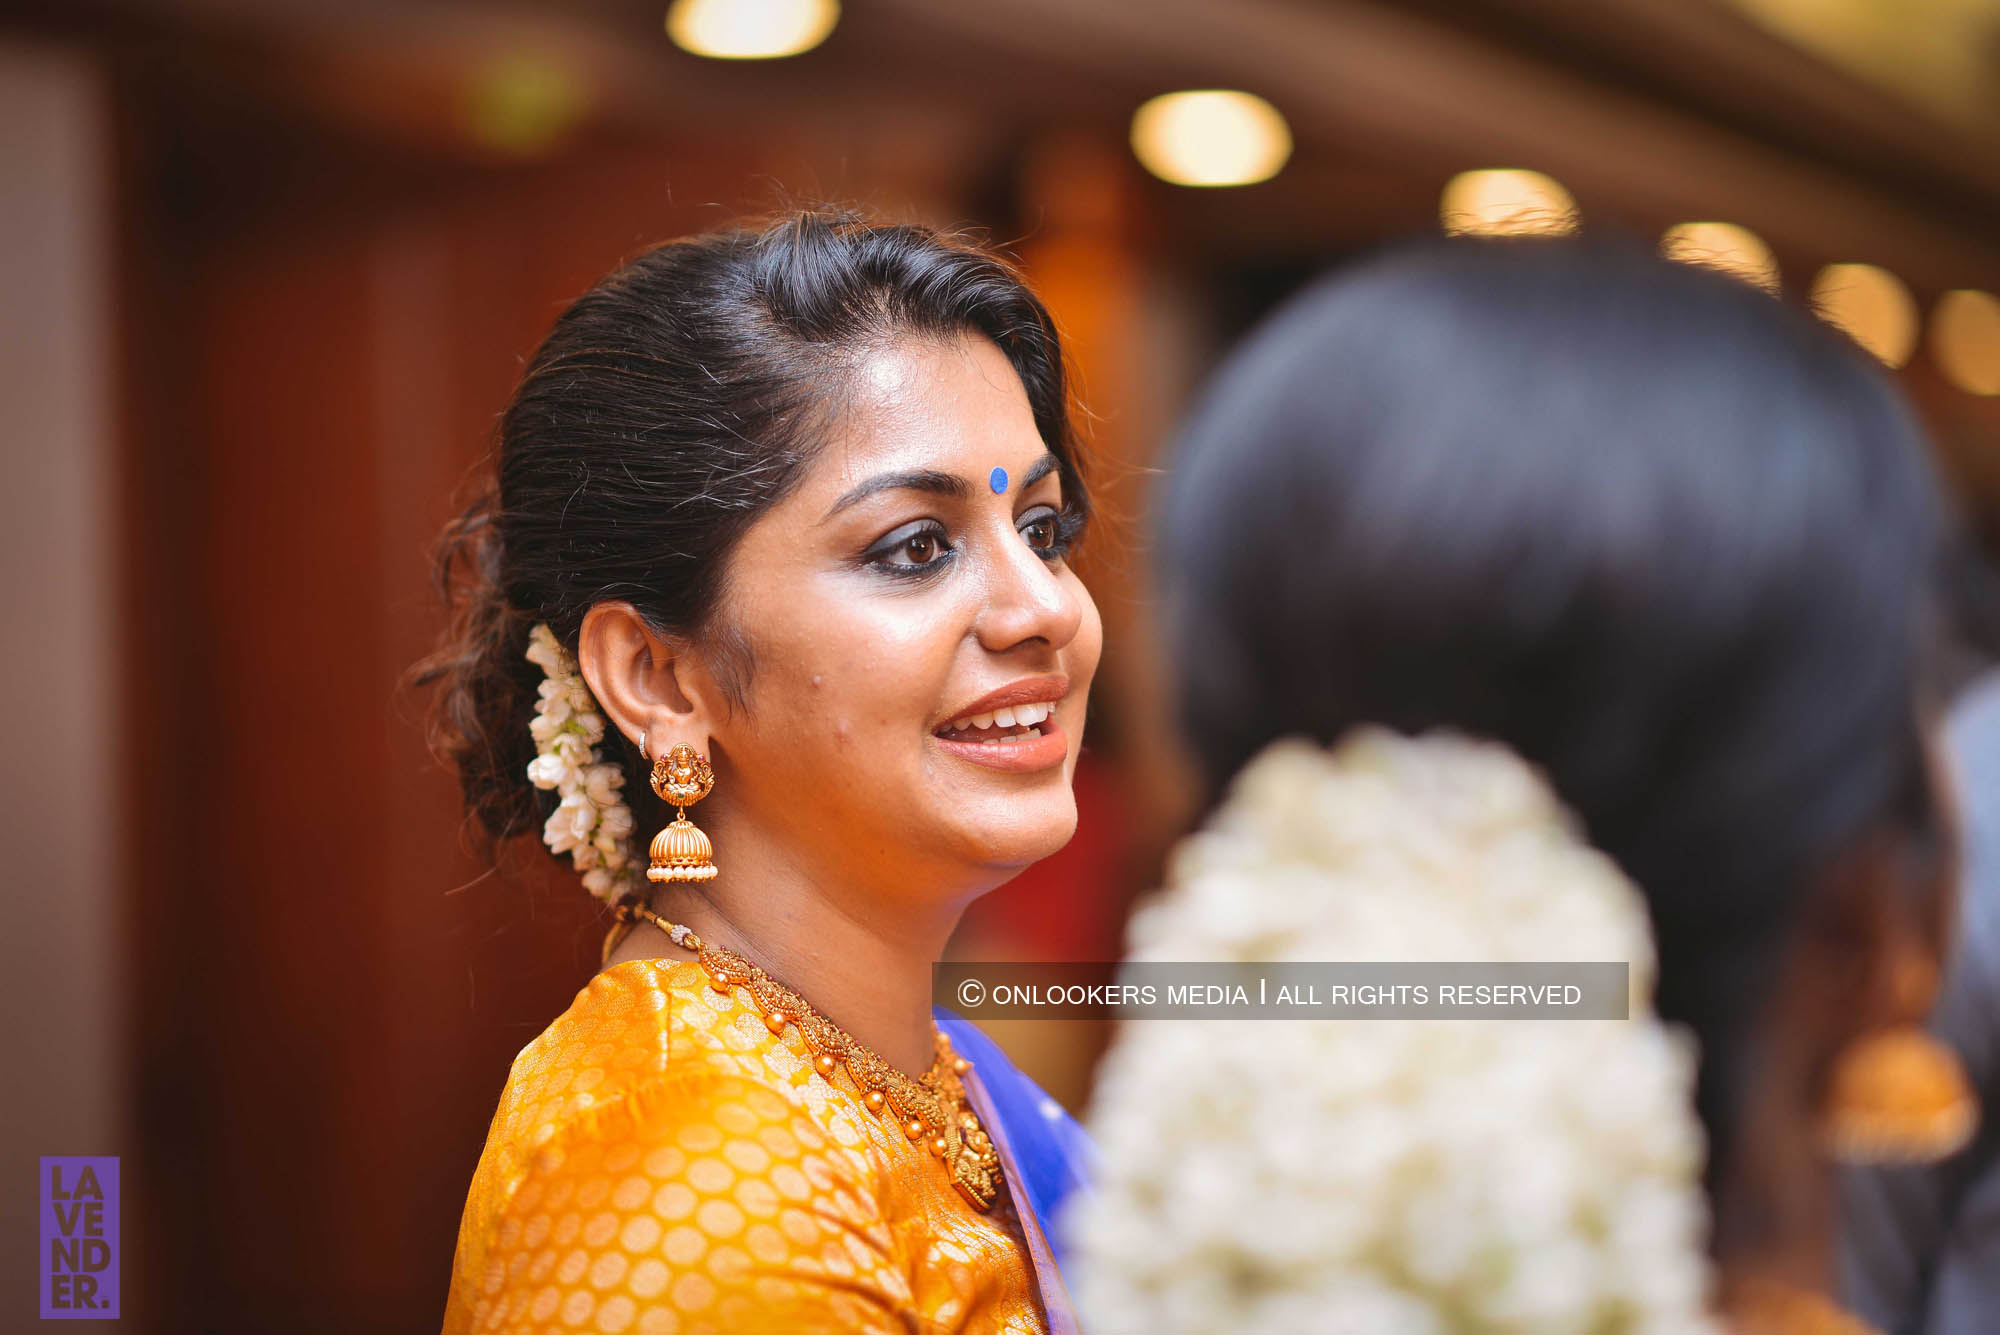 http://onlookersmedia.in/wp-content/uploads/2018/05/sreejith-vijay-wedding-stills-images-100.jpg